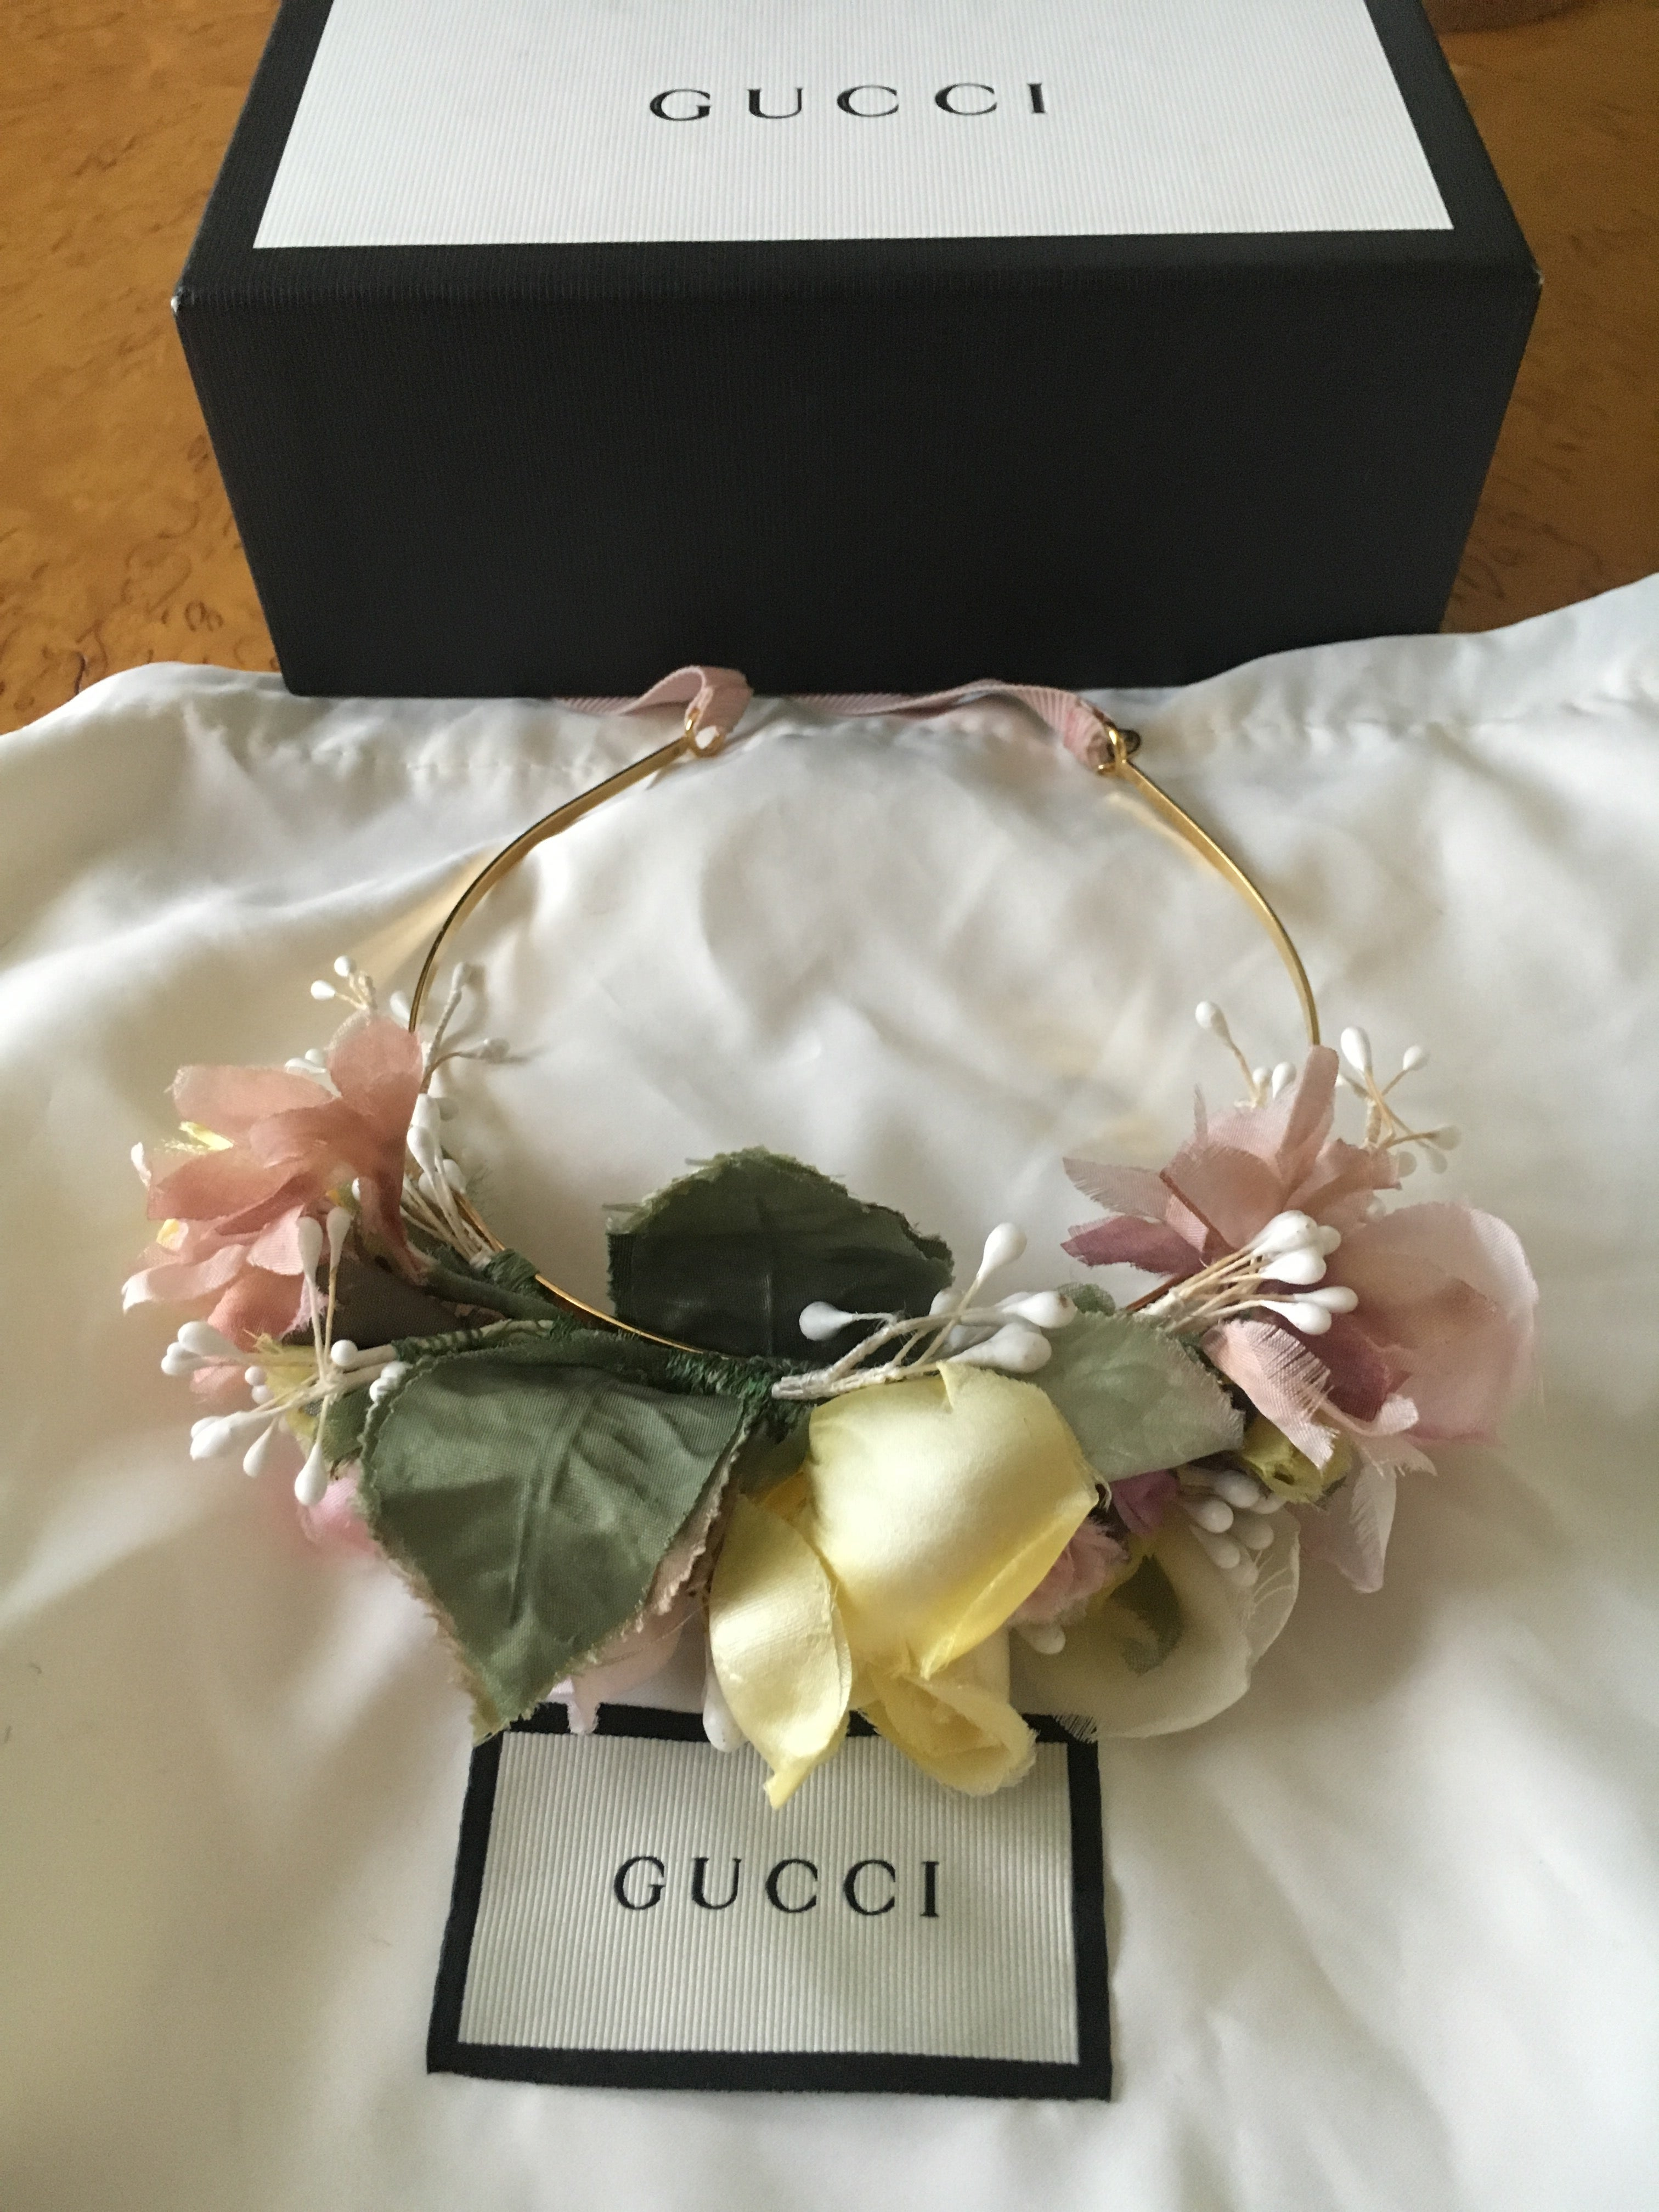 221fcd56474 Gucci 2016 Floral Headband by Alessandro Michele New in Box For Sale at  1stdibs